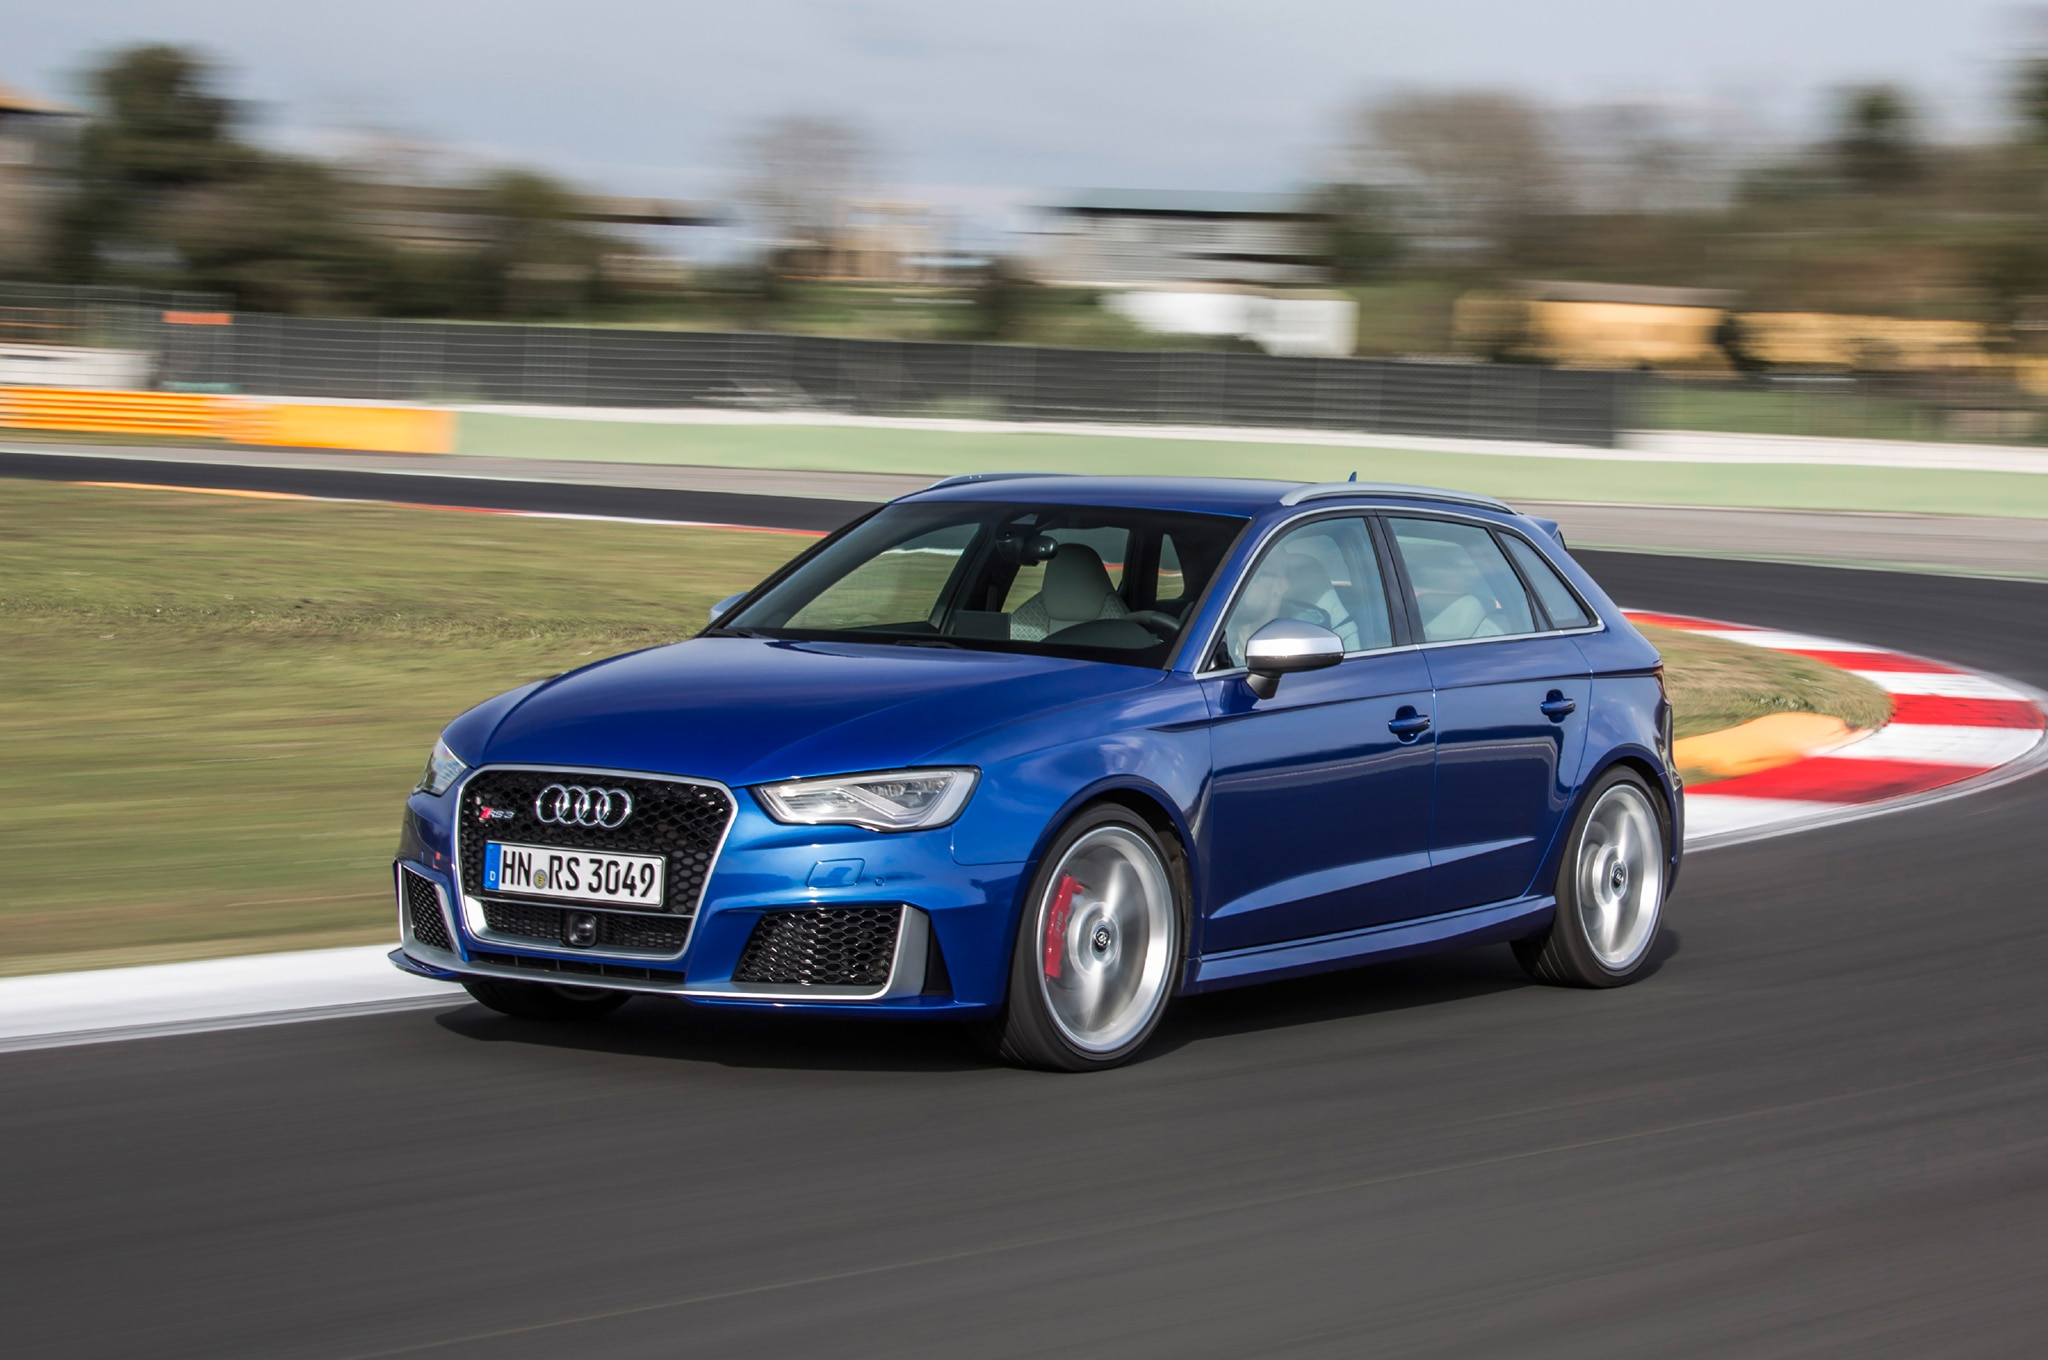 audi rs3 coming to u s in 2017 with new five cylinder turbo engine automobile magazine. Black Bedroom Furniture Sets. Home Design Ideas